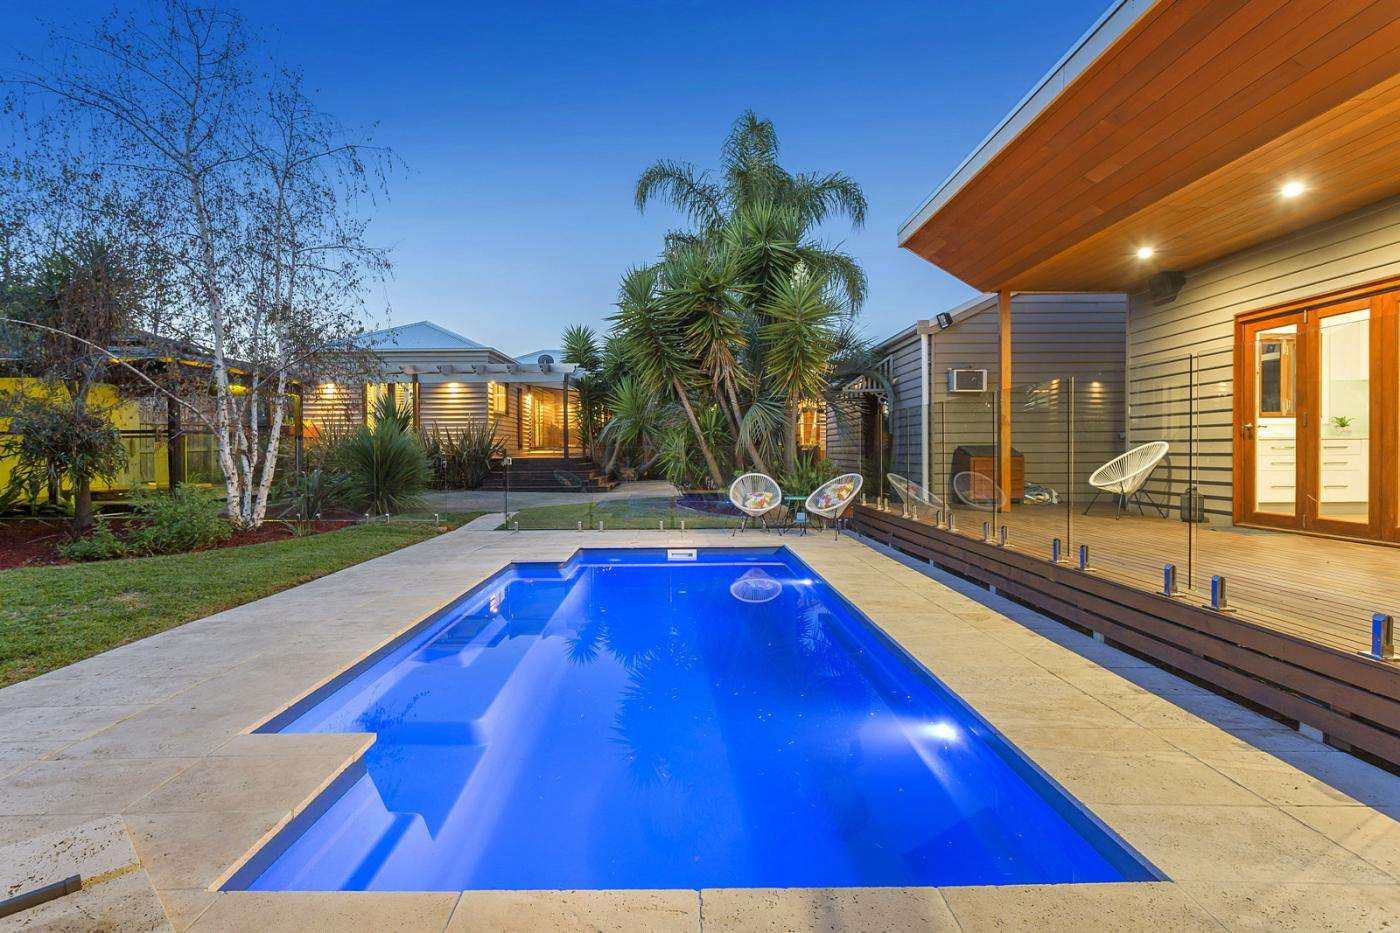 Main view of Homely house listing, 26 Meridian Way, Mornington, VIC 3931